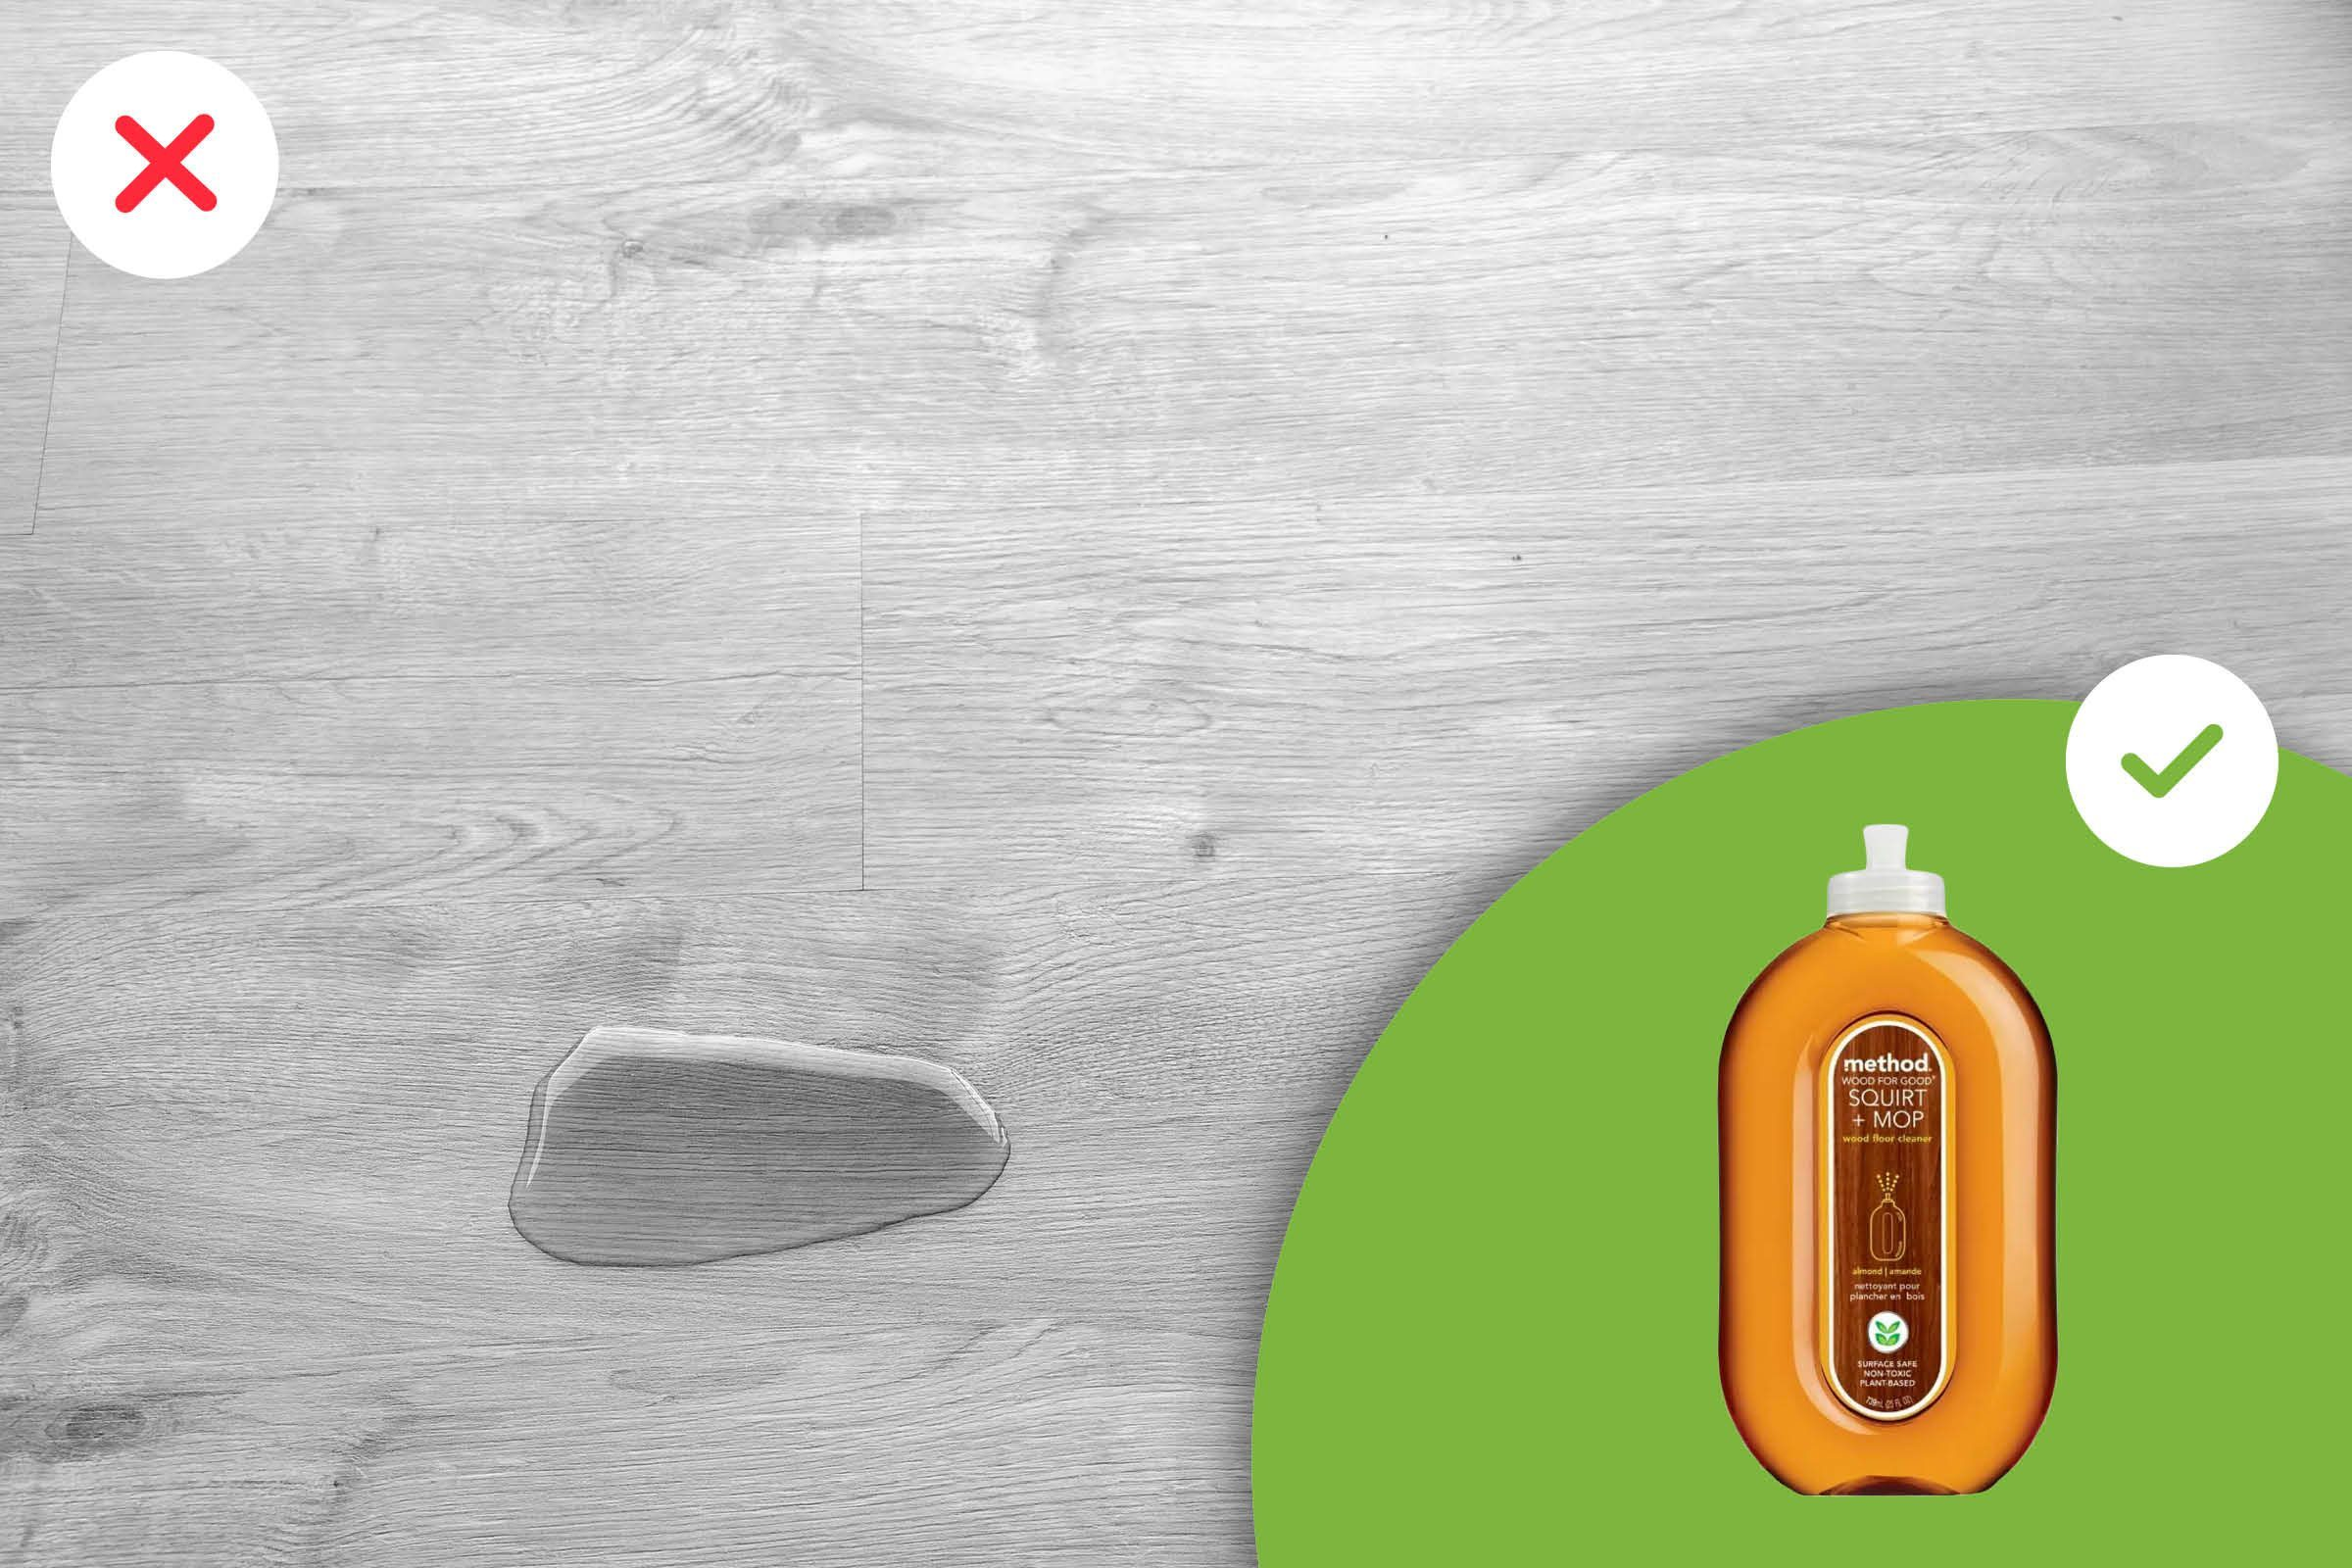 Products you should not use on a wooden floor